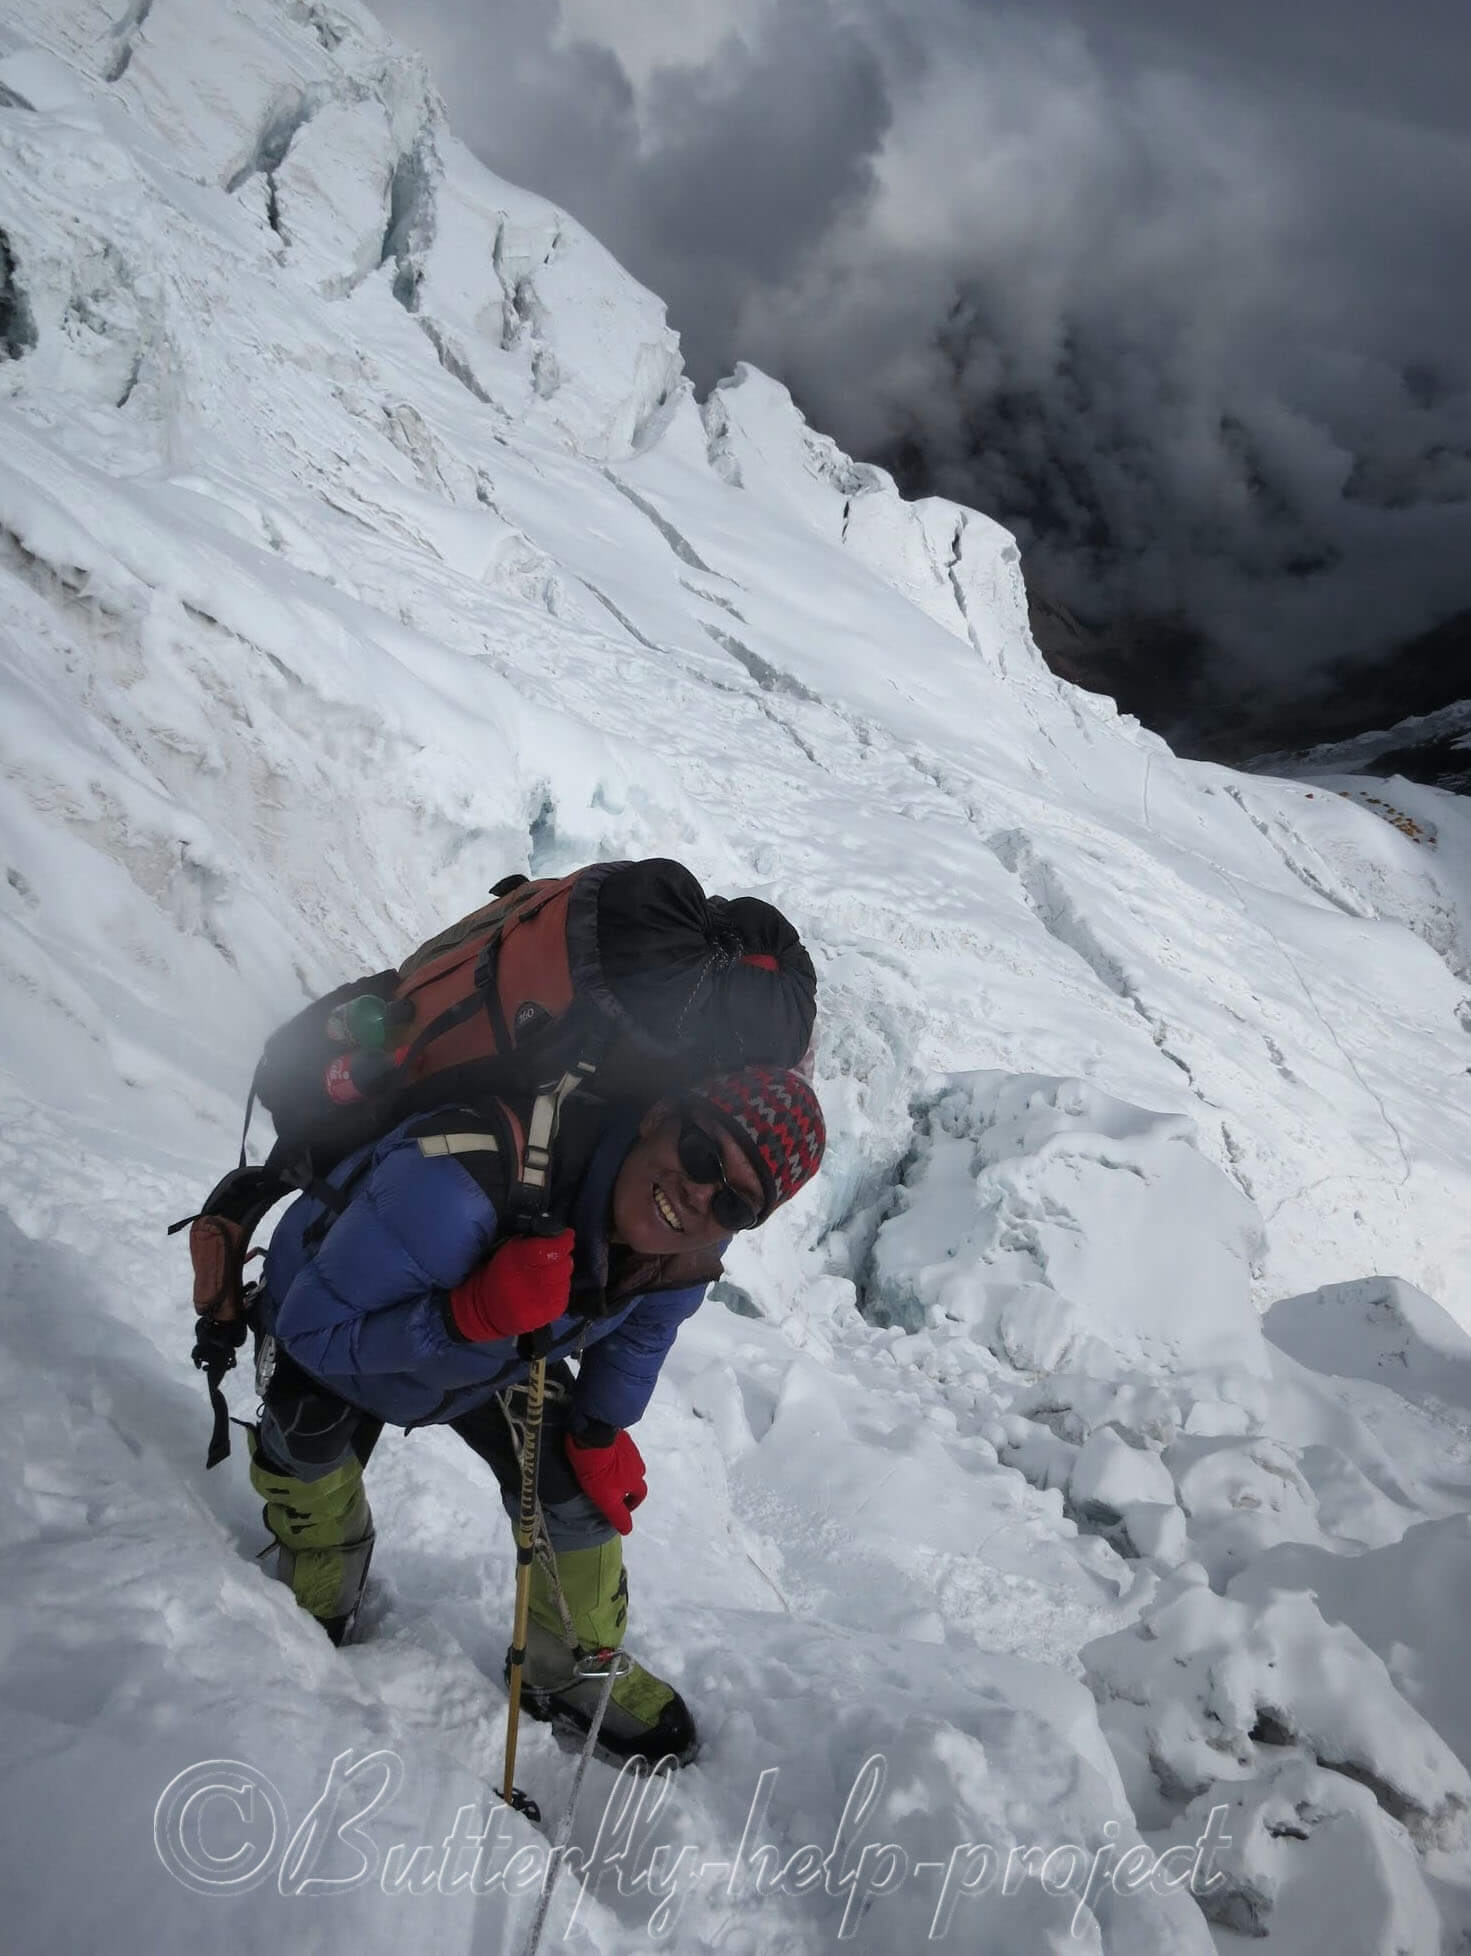 Role of climbing Sherpa